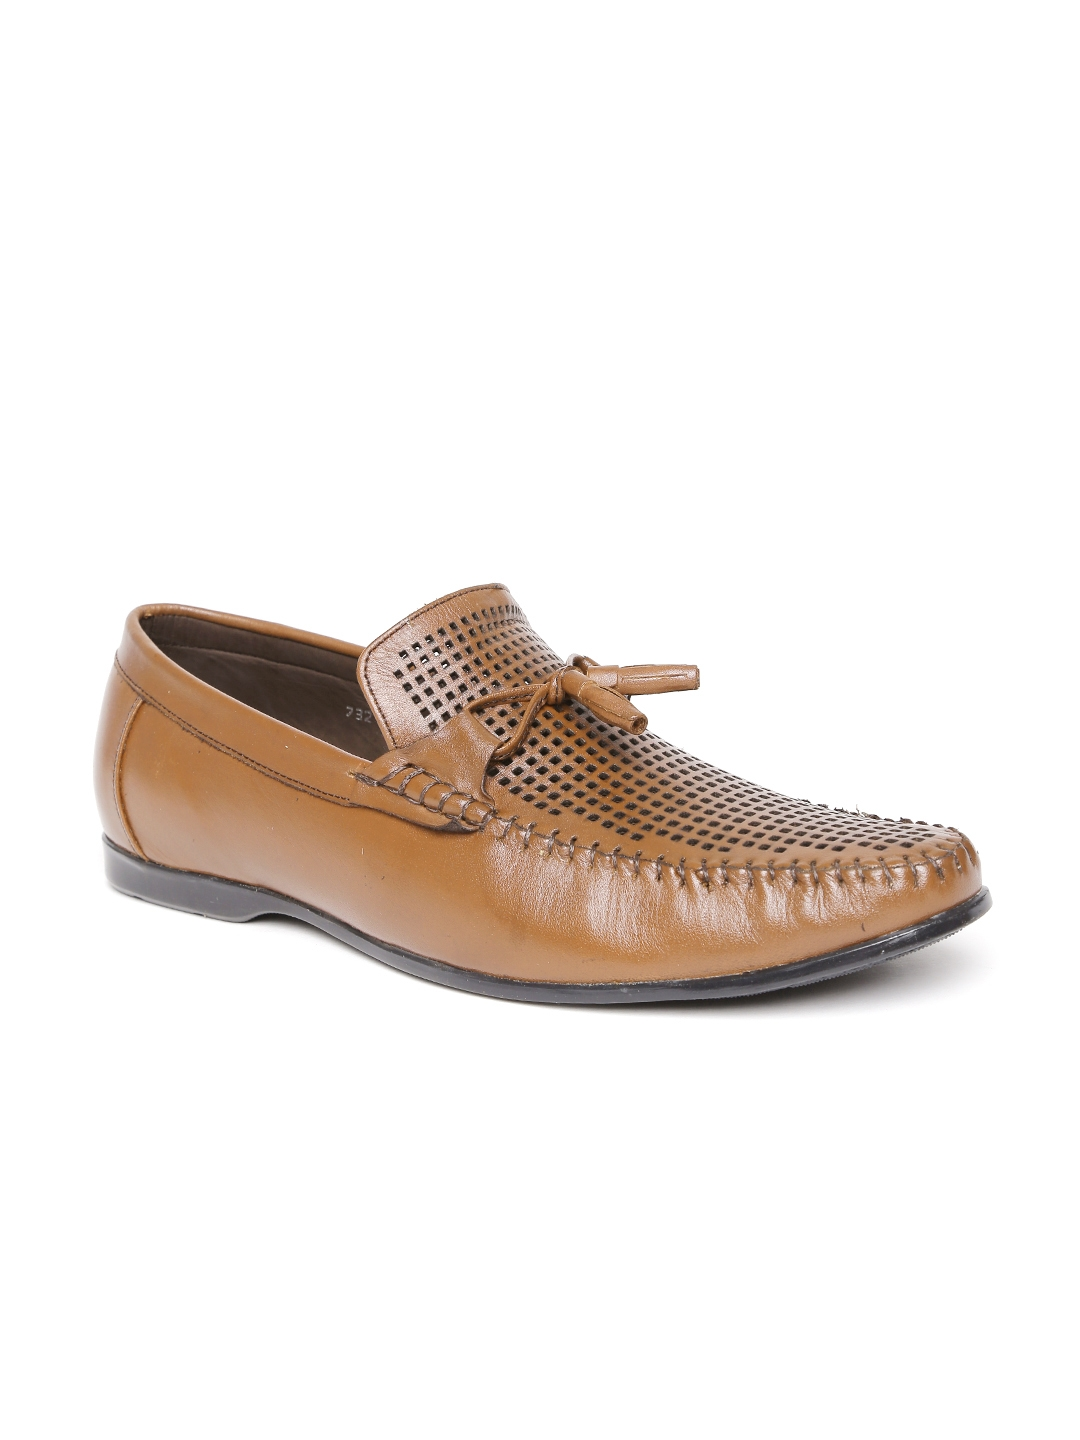 a3445f72869 Buy San Frissco Men Tan Brown Cut Out Leather Loafers - Casual Shoes ...